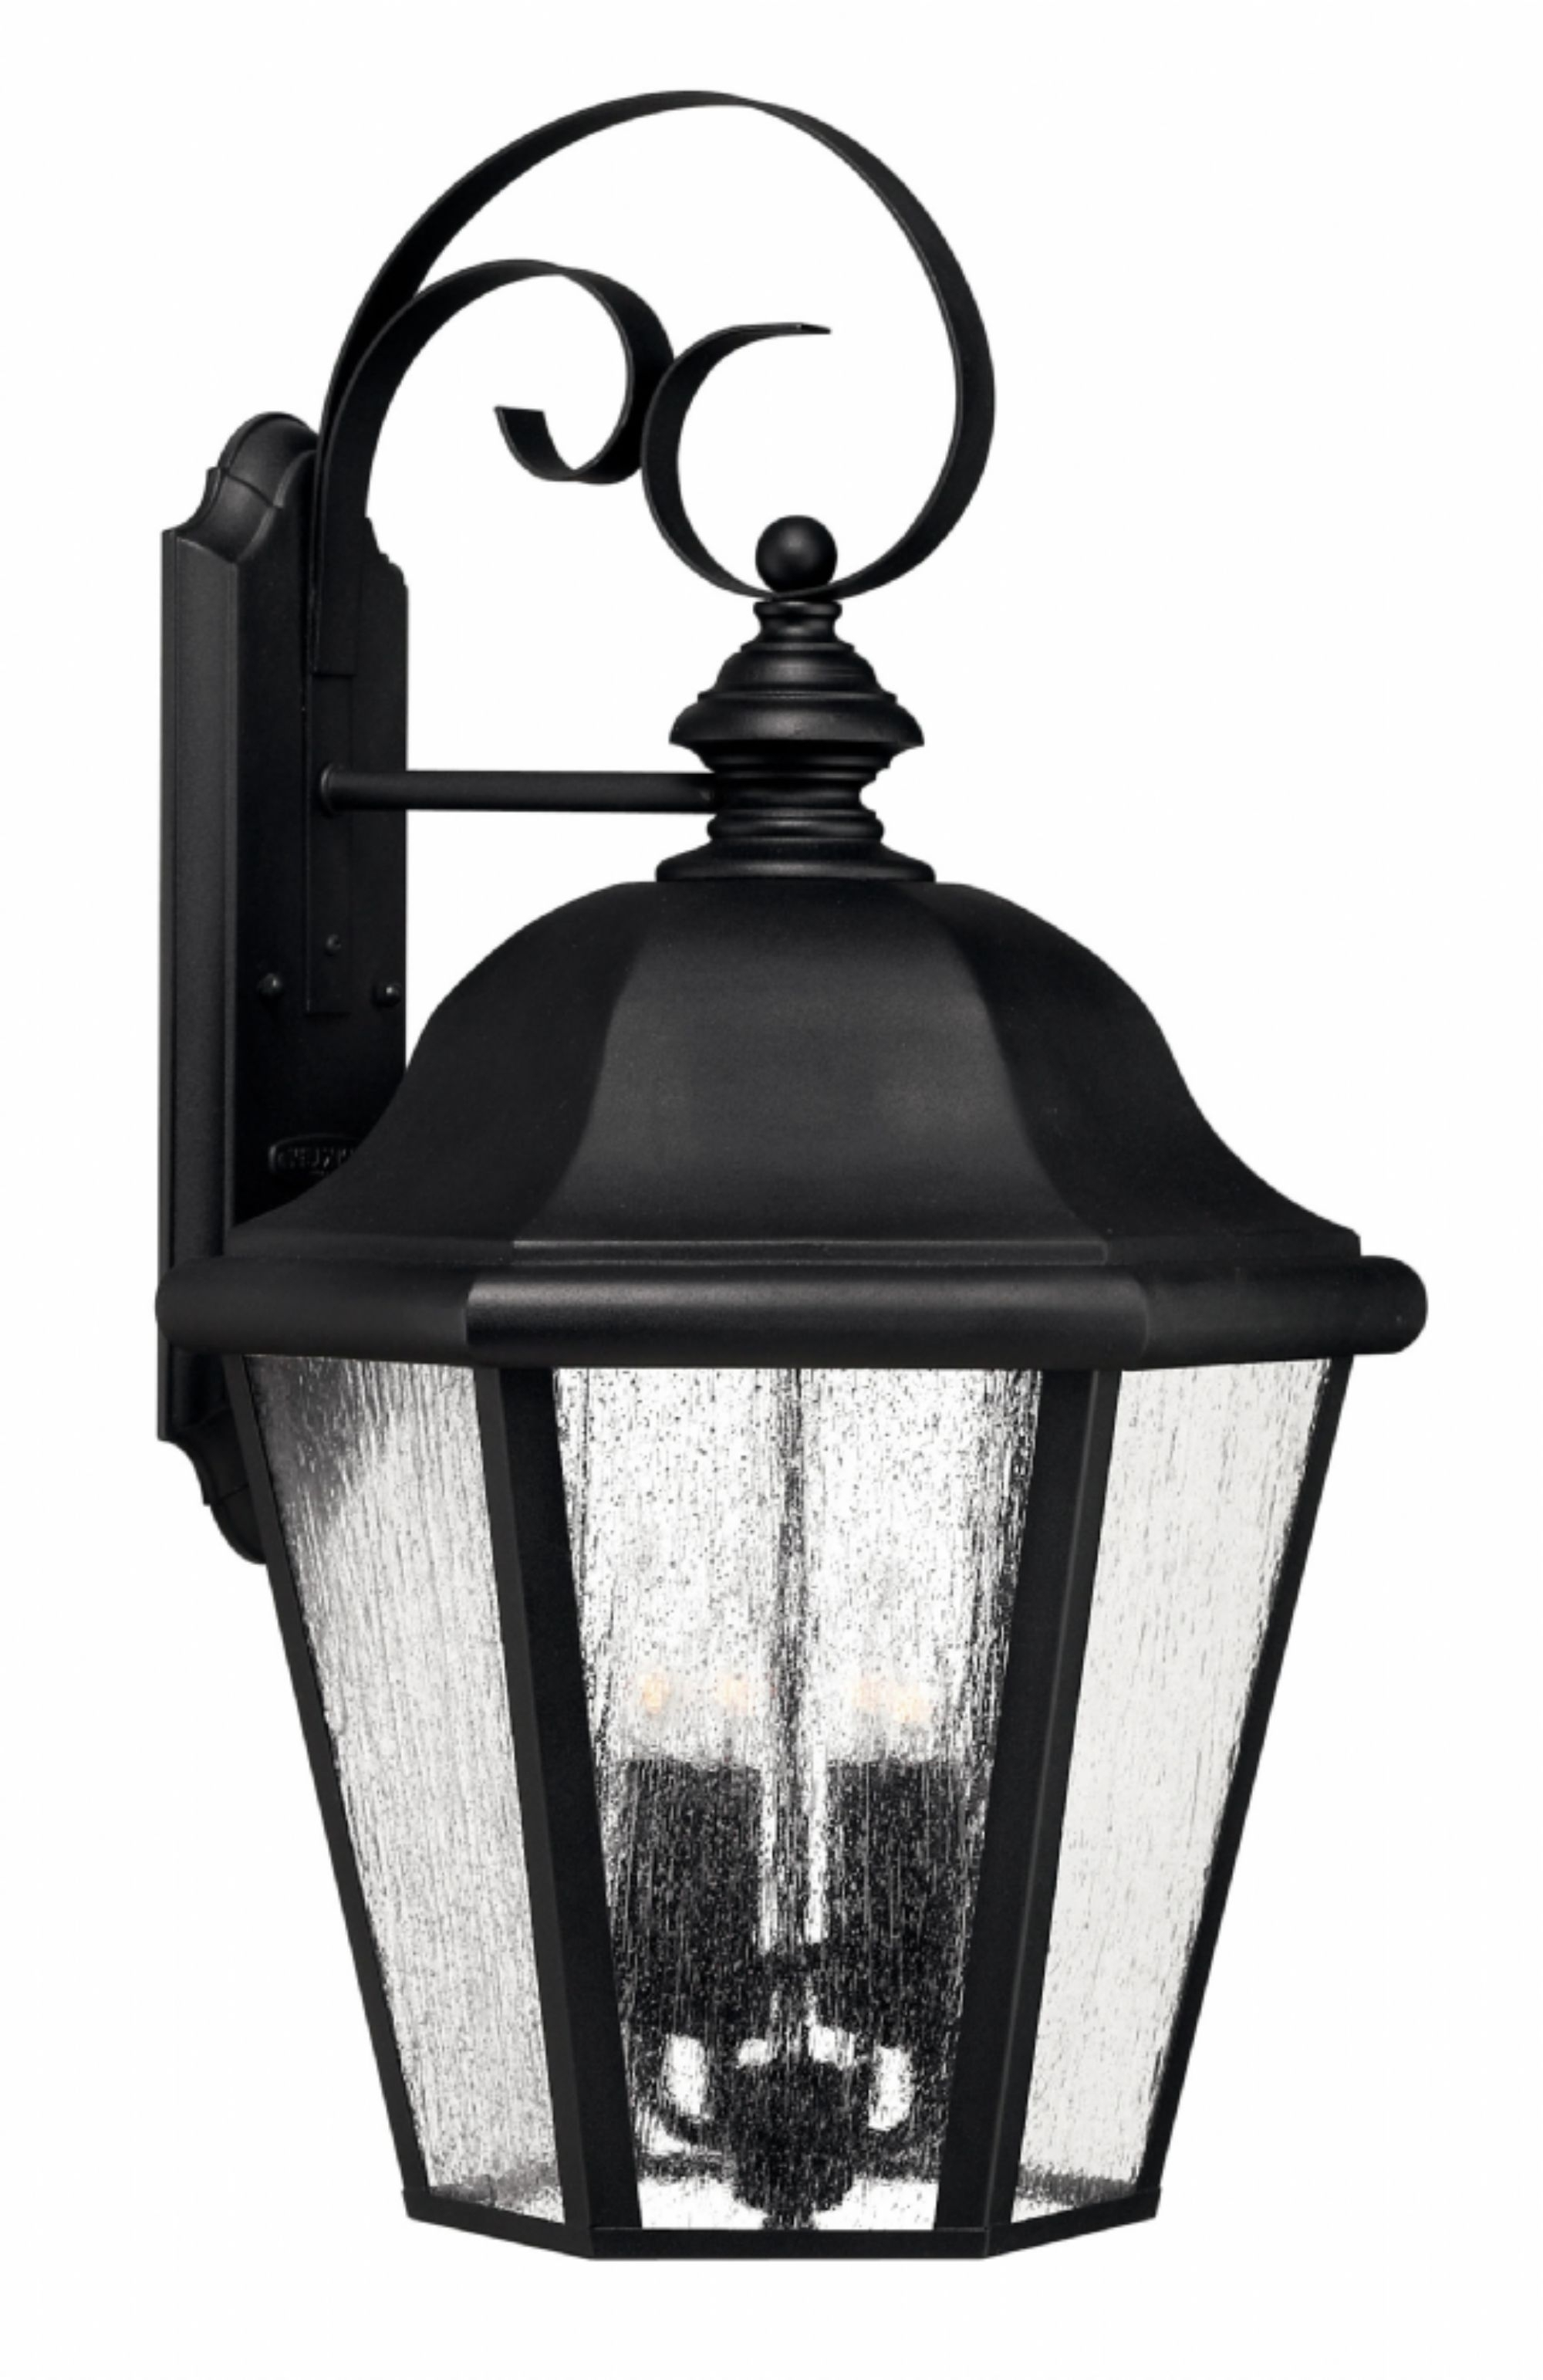 Black Edgewater > Exterior Wall Mount In Most Recent Outdoor Wall Sconce Lighting Fixtures (View 3 of 20)